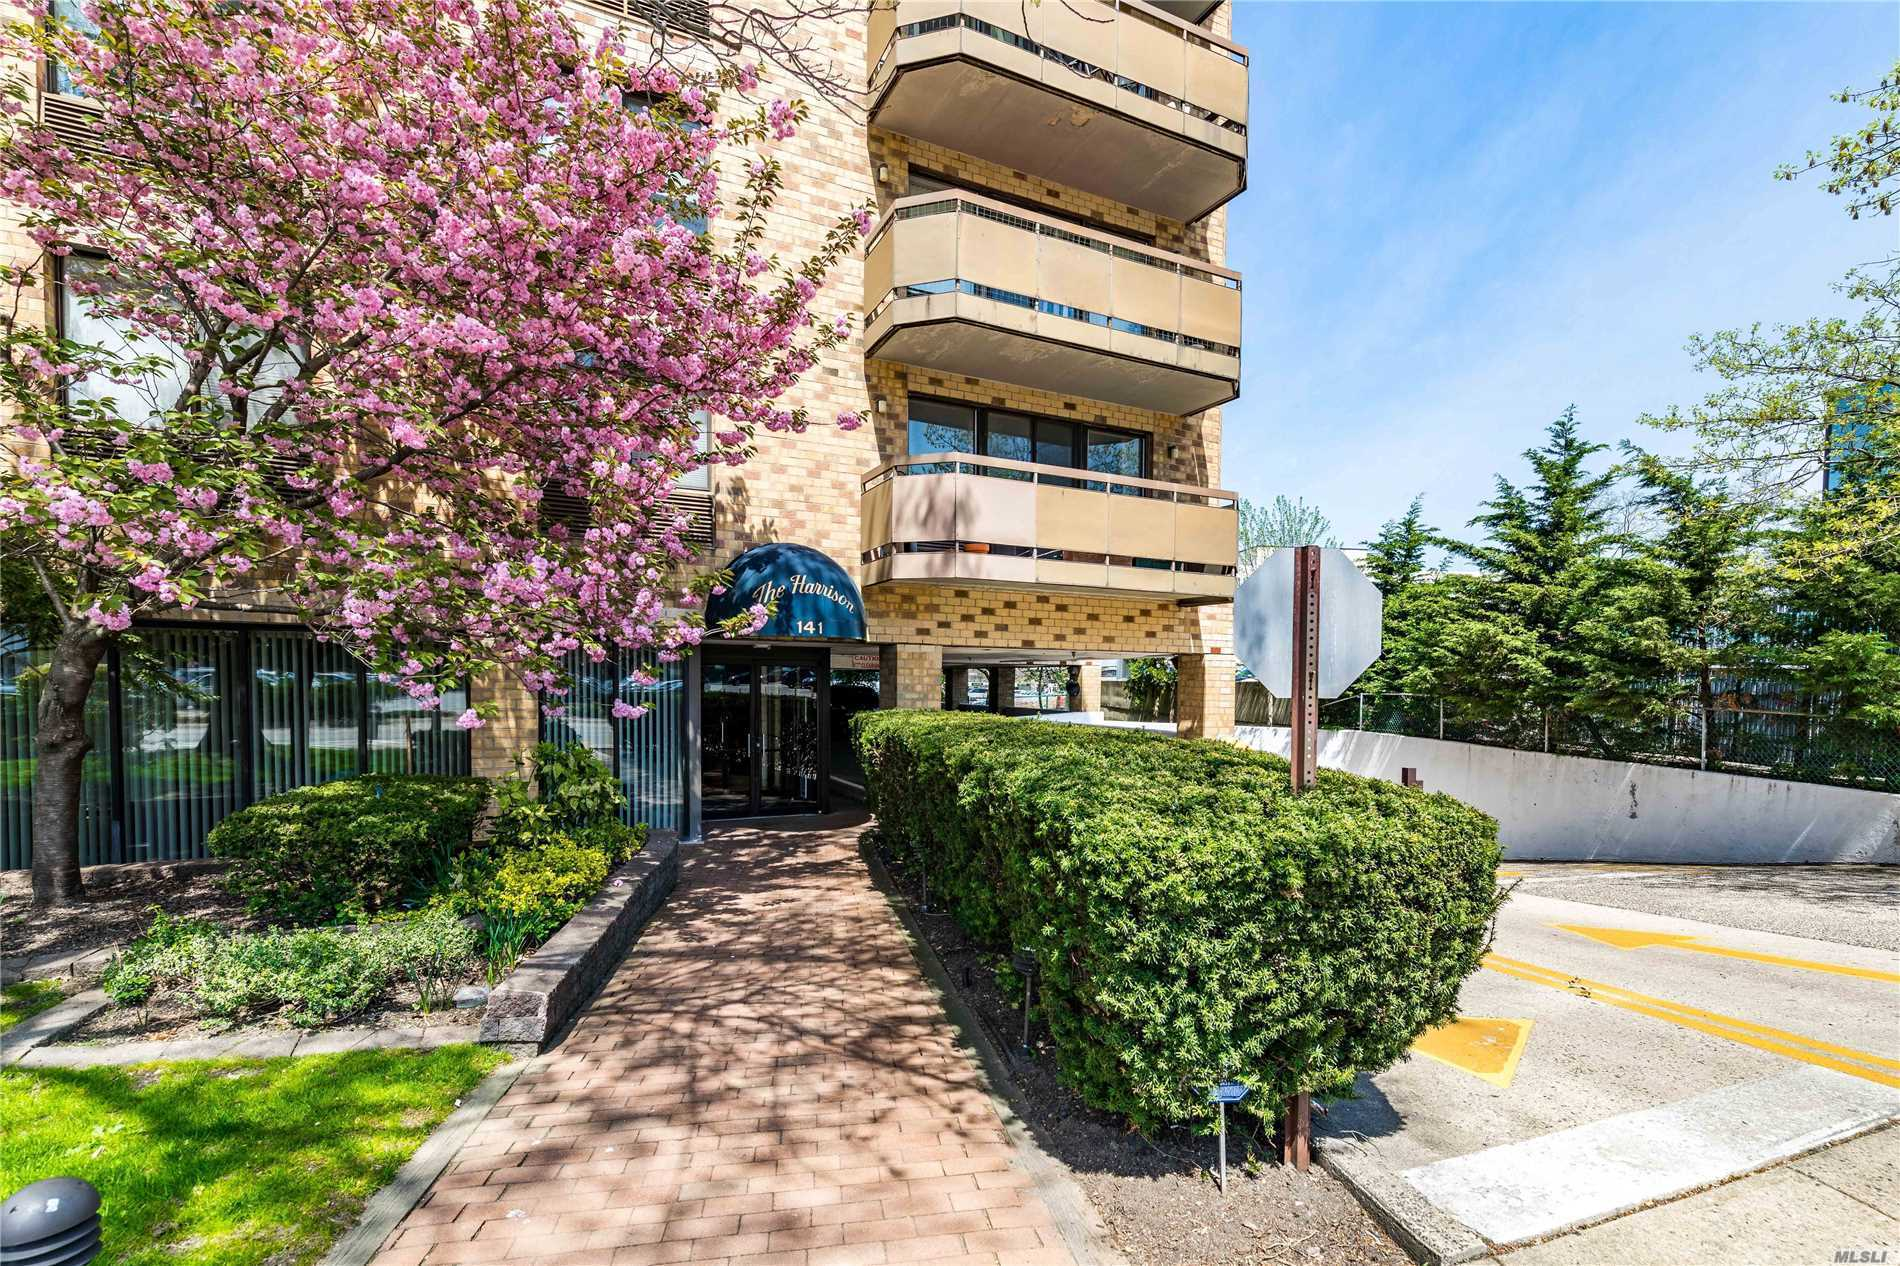 Great Neck. Large Junior 4/1.5 Bath Apartment in the Heart of Great Neck. In-Unit Washer/Dryer. Elevator Condo with 24 Hour Doorman! Very Close Proximity To Great Neck LIRR, Shopping, Dining, Restaurants, and Much More!